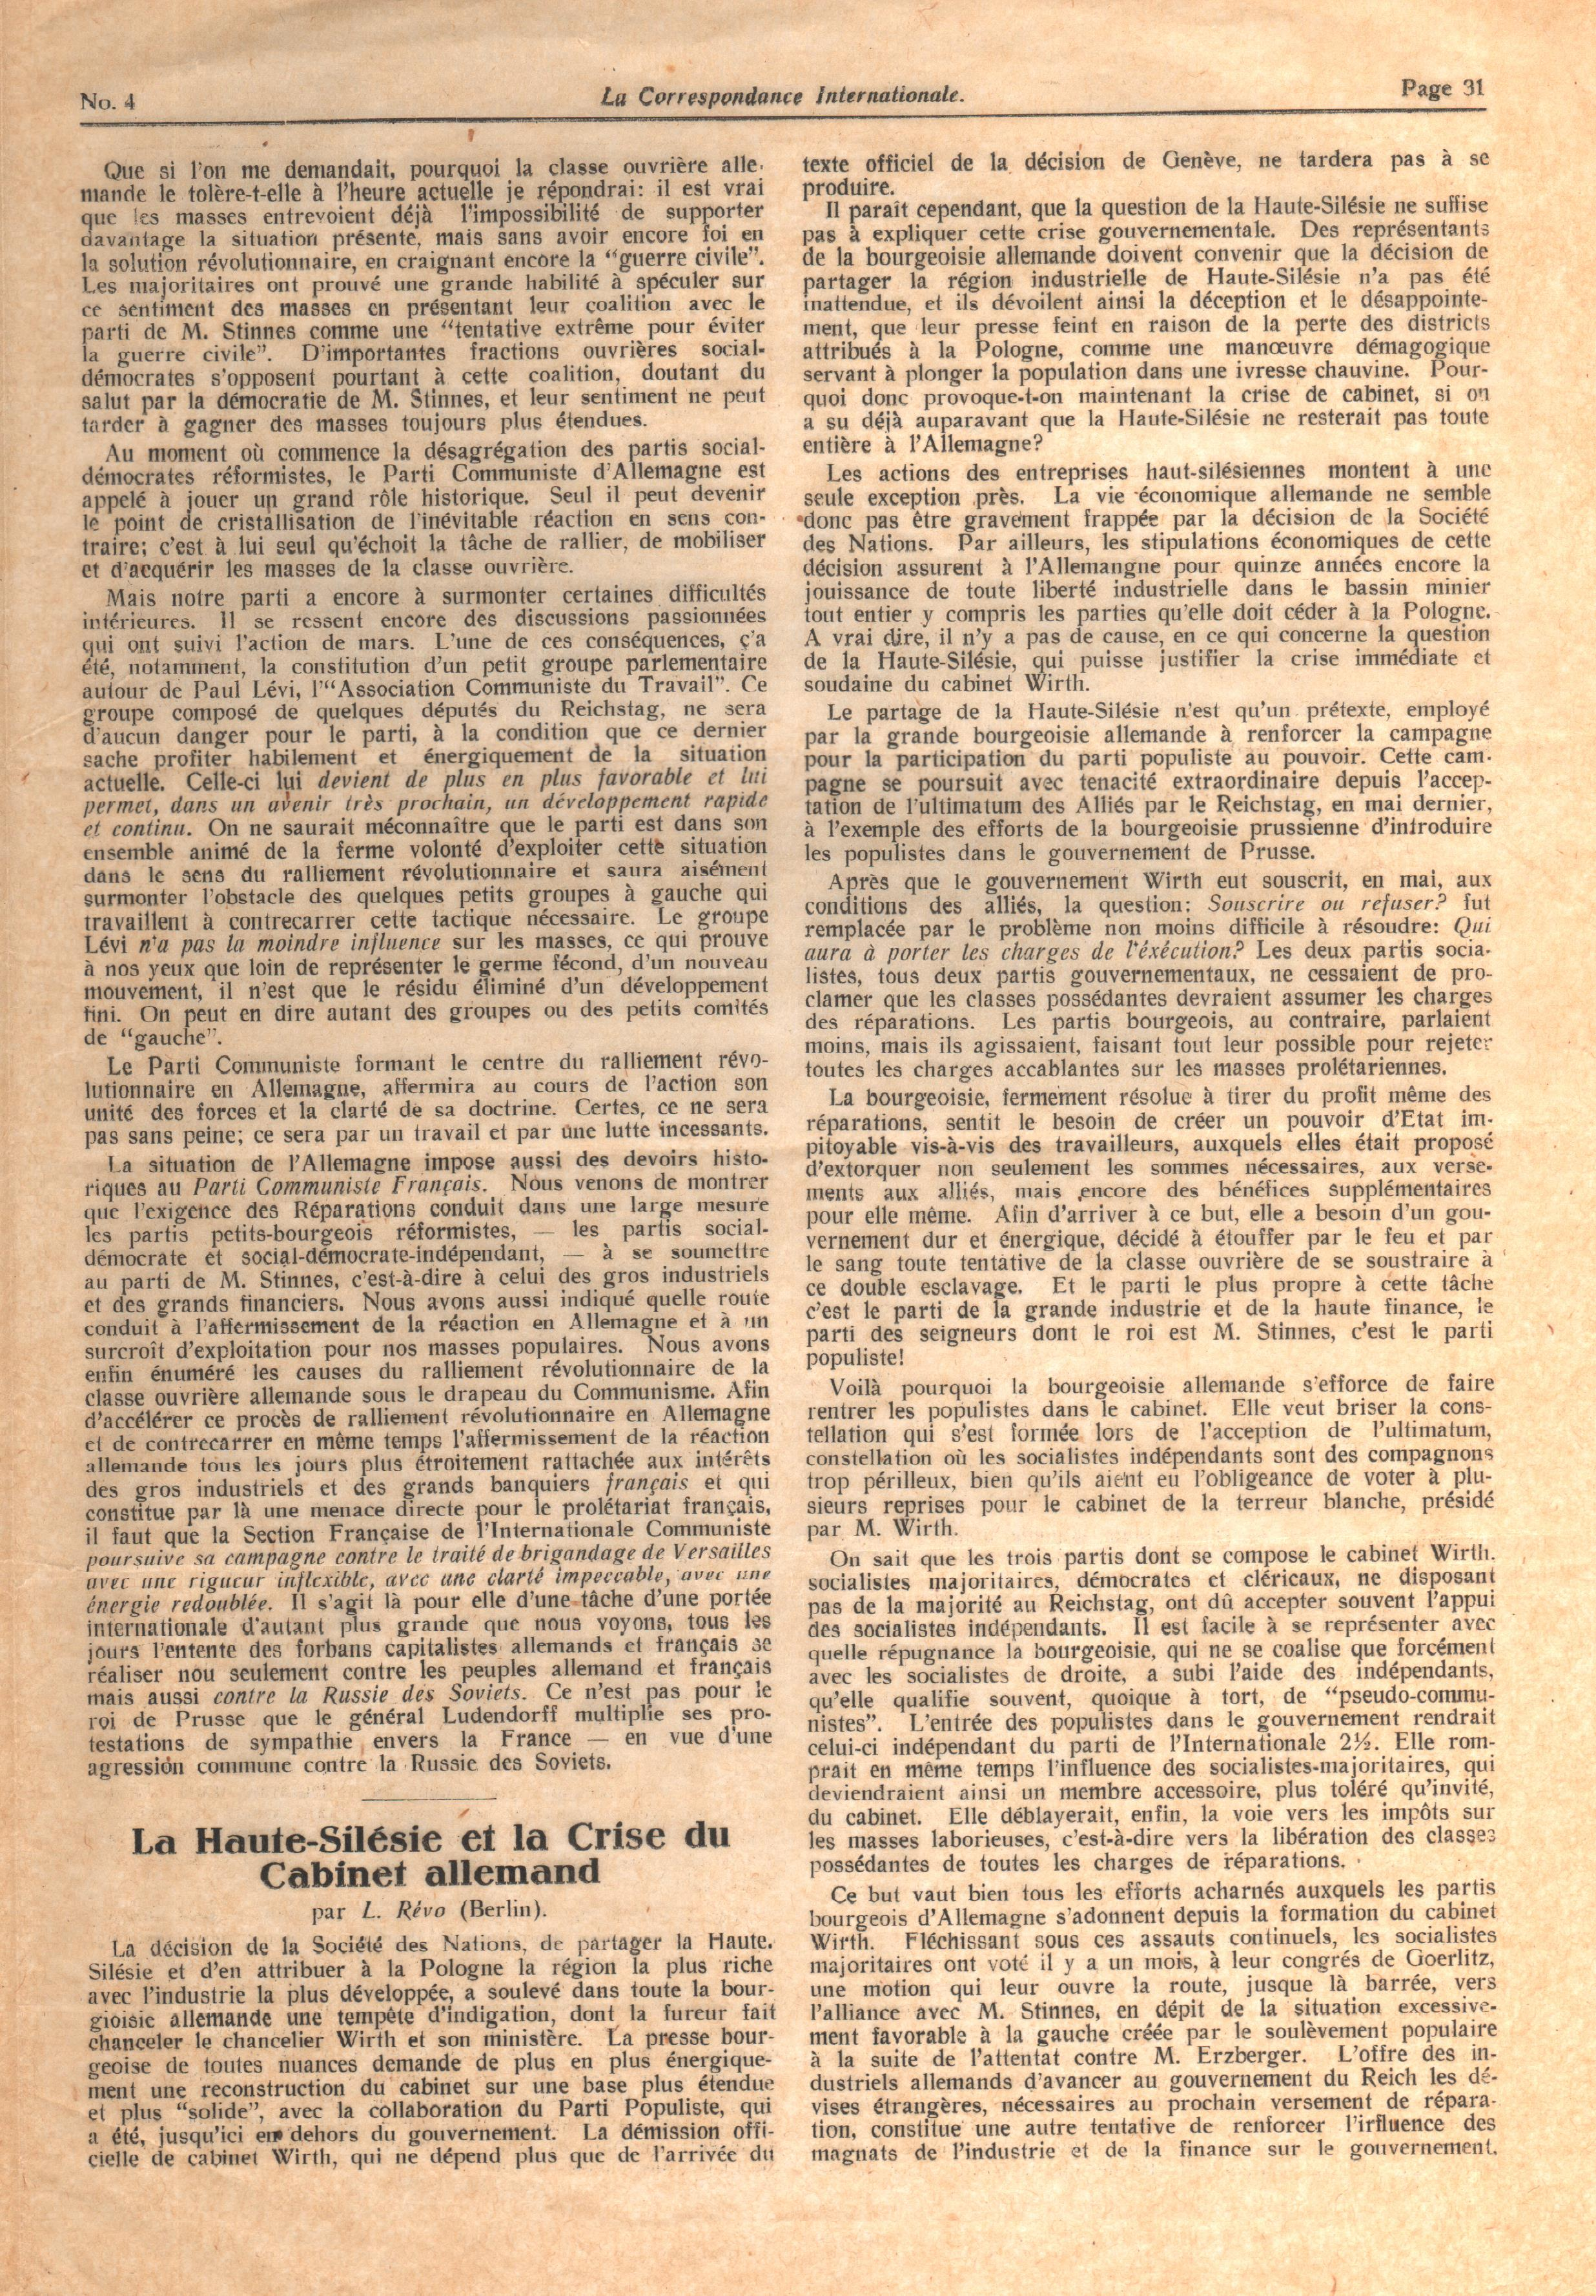 Correspondance Internationale n. 4 - pag. 3